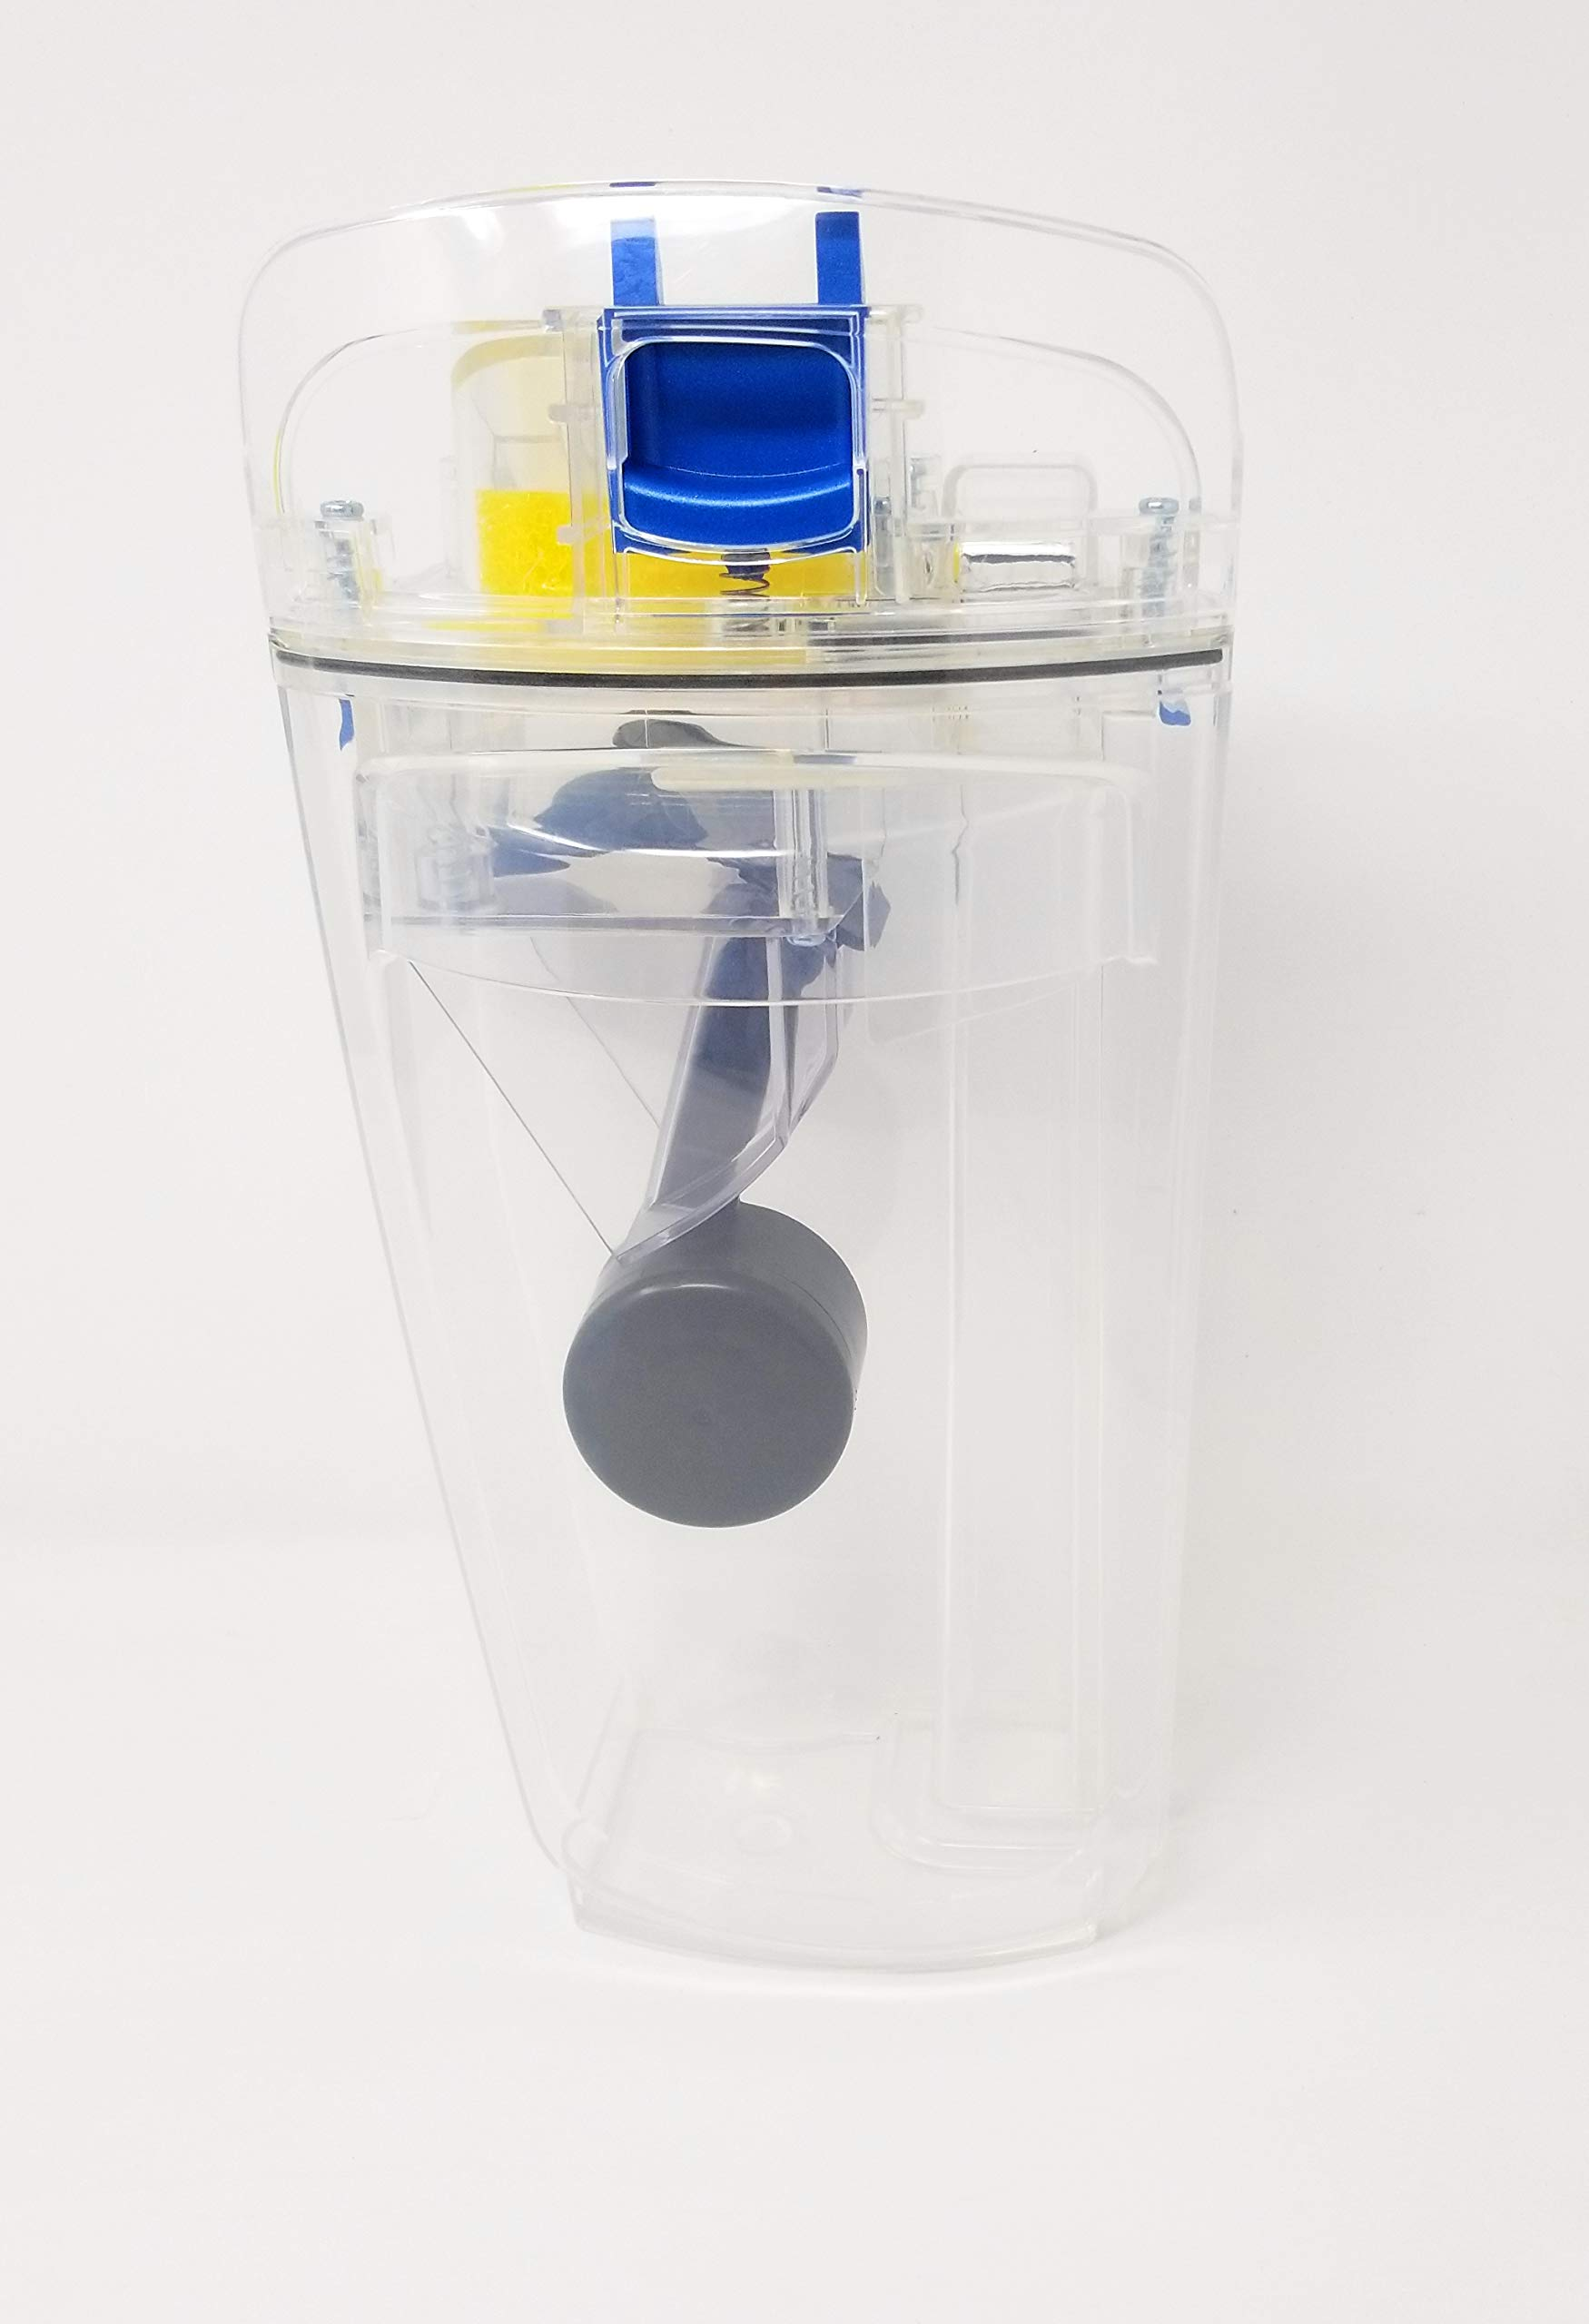 Hoover Dirty Water Tank Assembly Complete with Lid & Float- for FLOORMATE SPINSCRUB BH55100 OEM Part